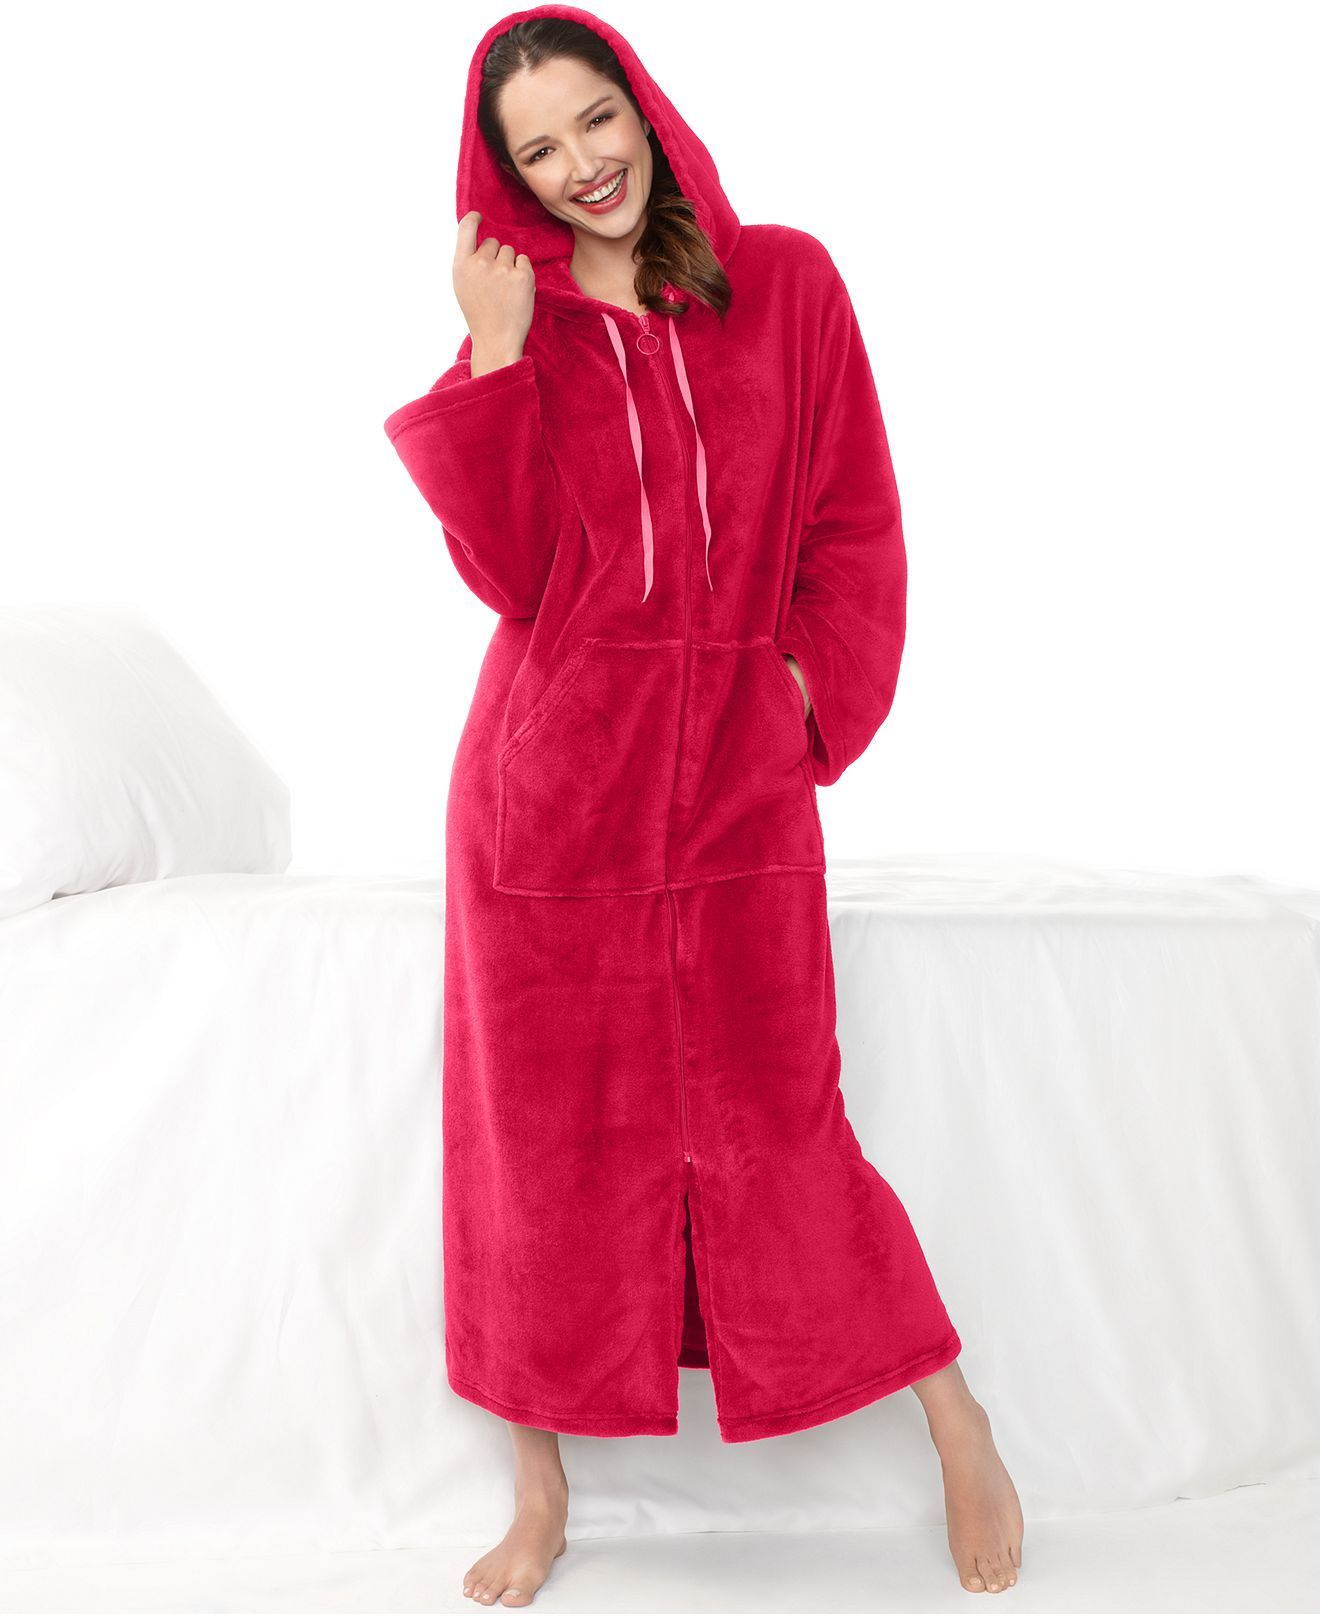 Charter Club Robe, Supersoft Long Hoodie Zip Up Robe - Womens Robes ...